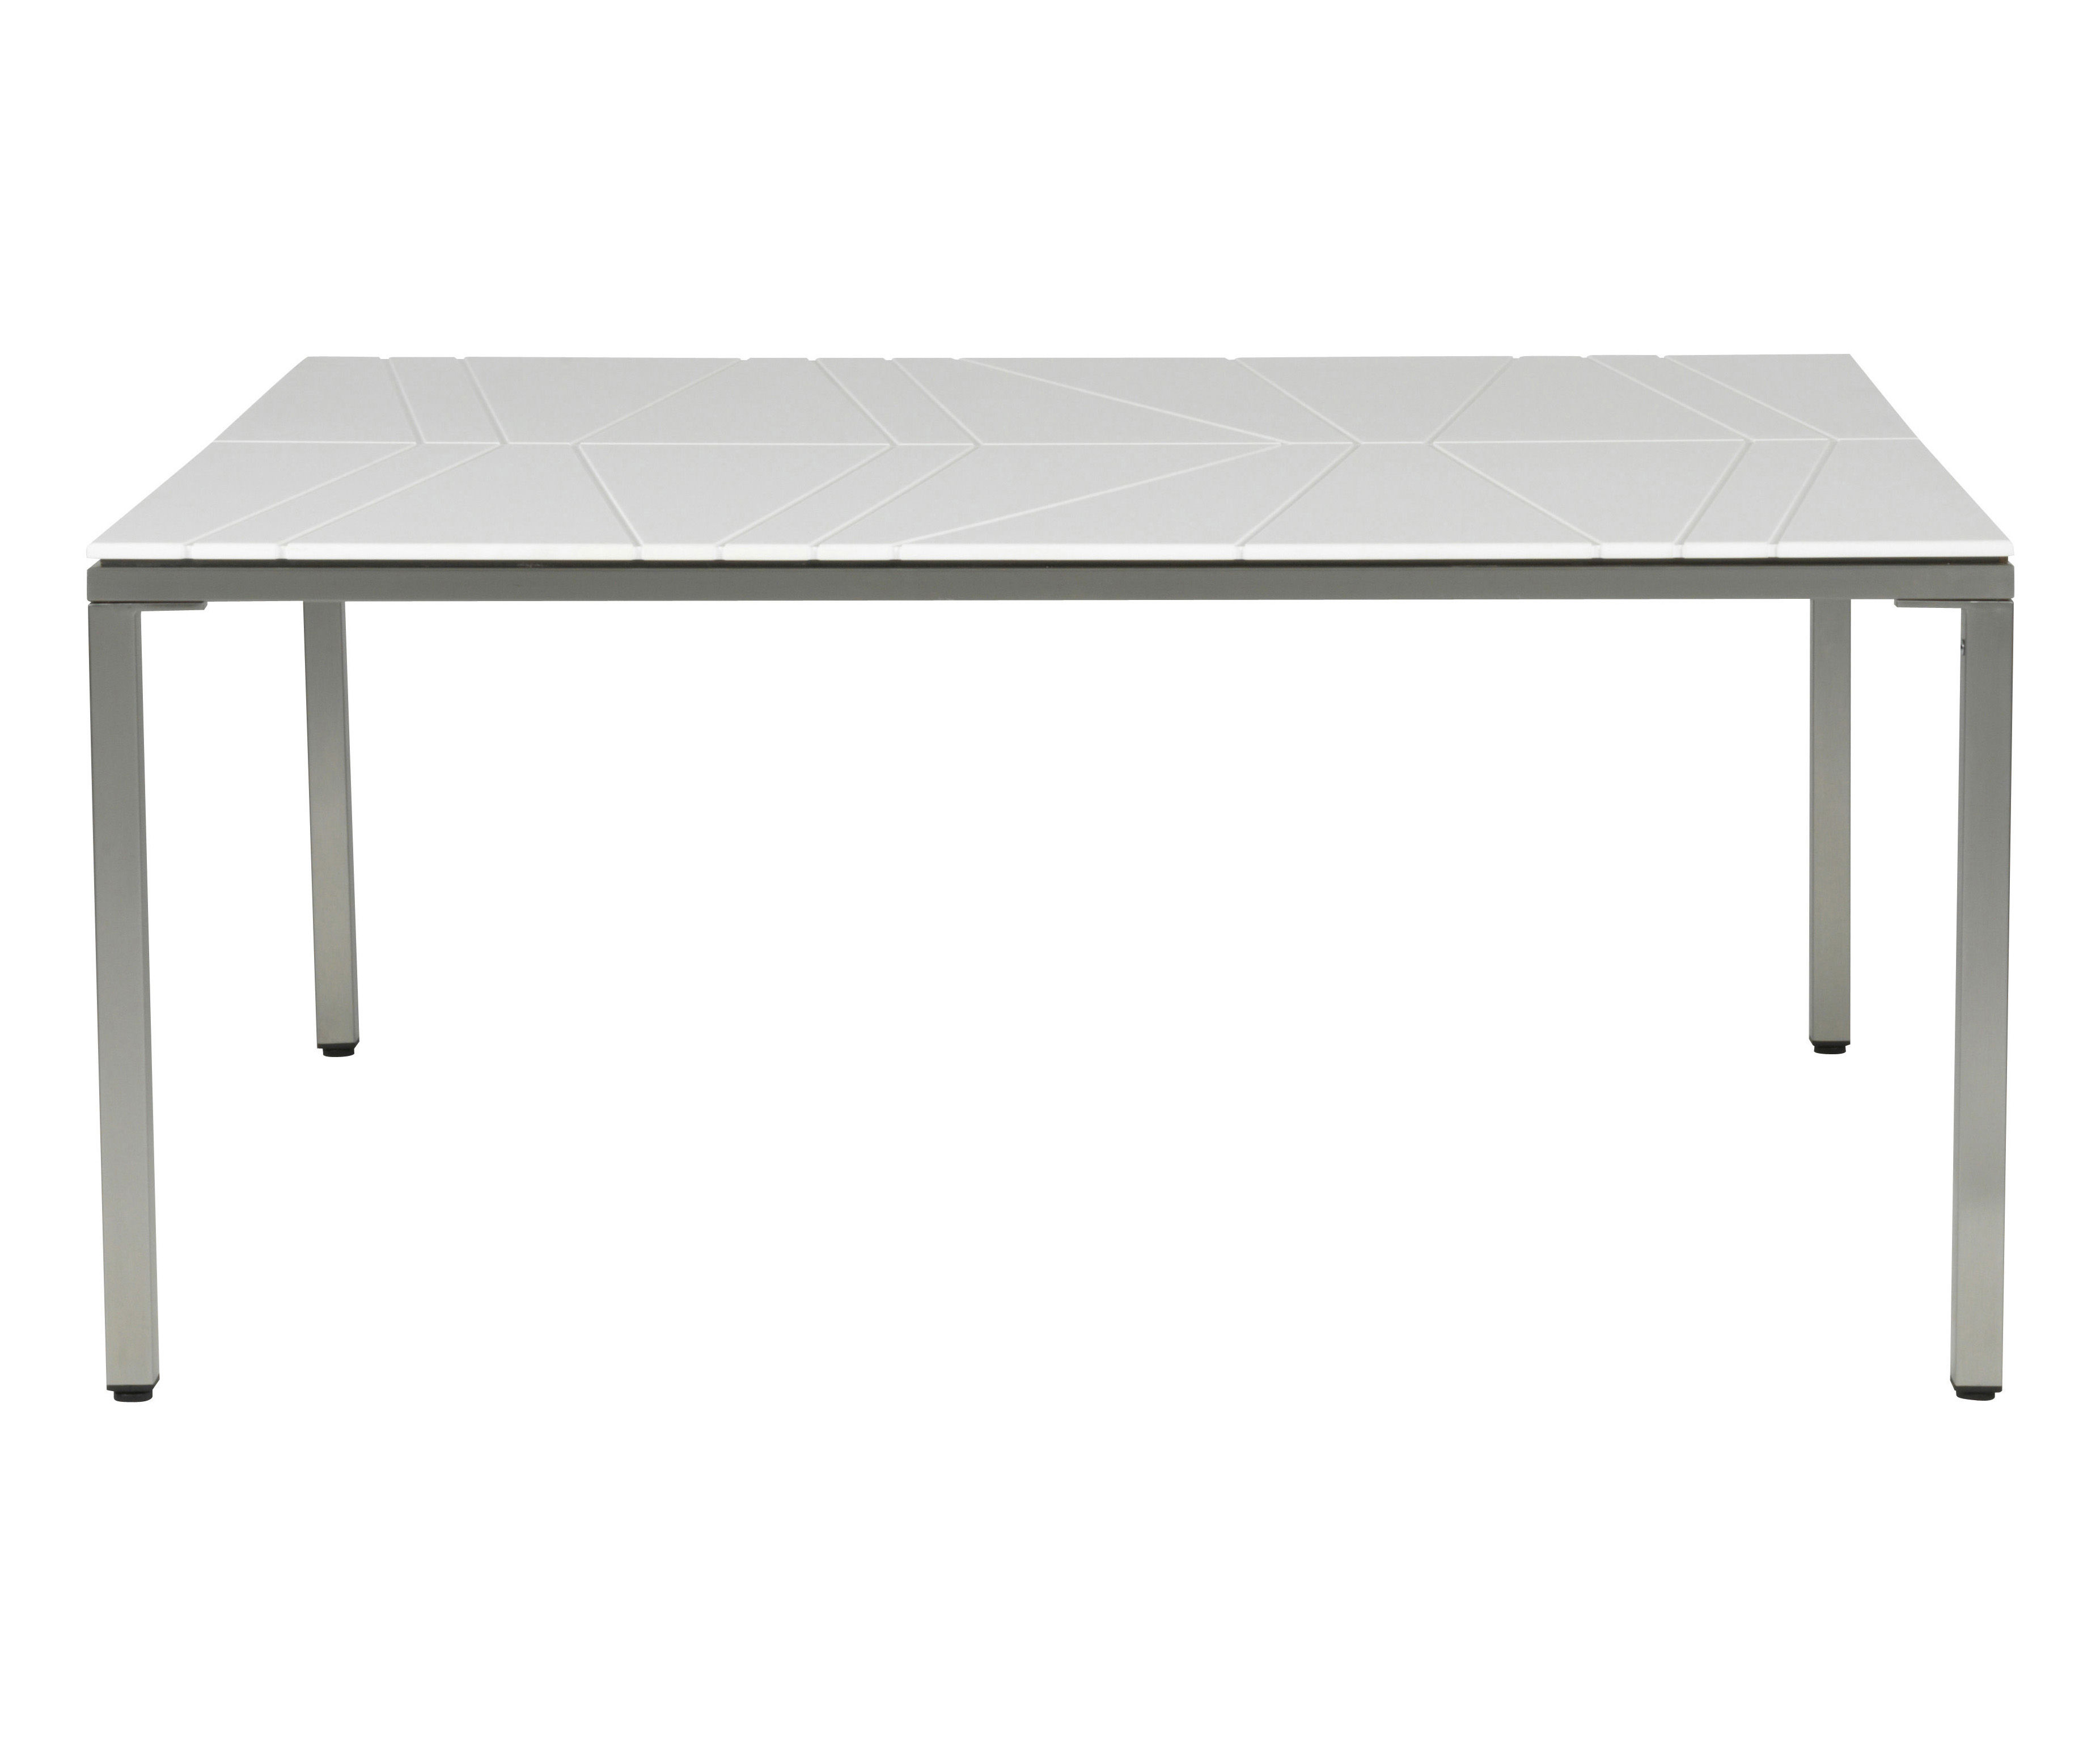 Bandoline table 140 x 140 cm white by viteo for Table 140x140